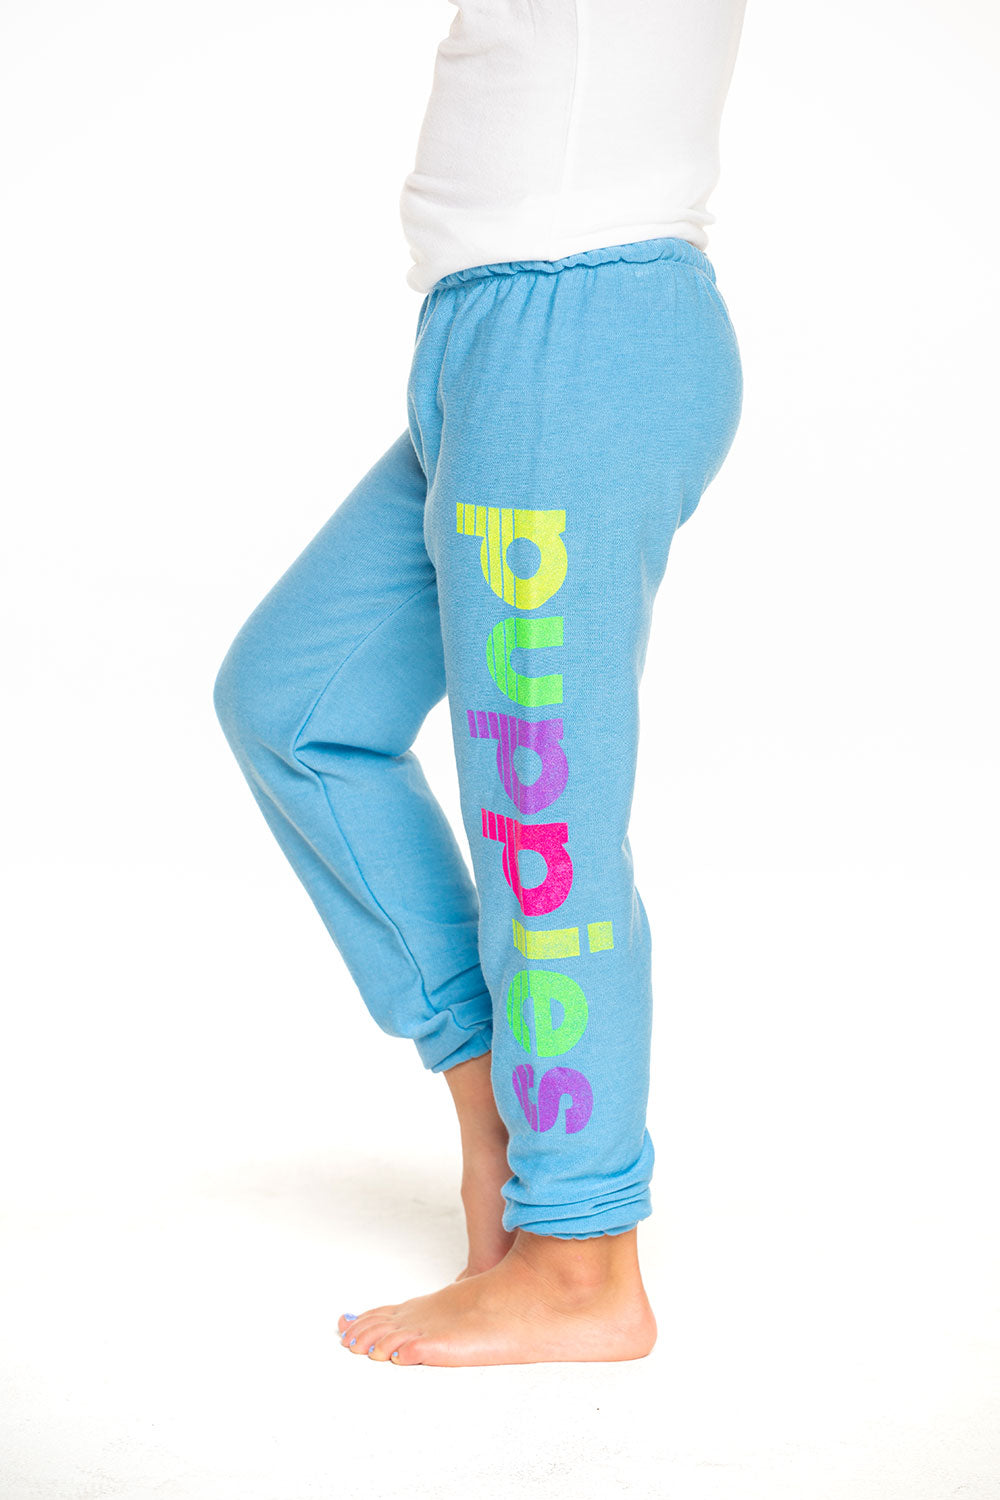 Puppies Charity Sweatpants